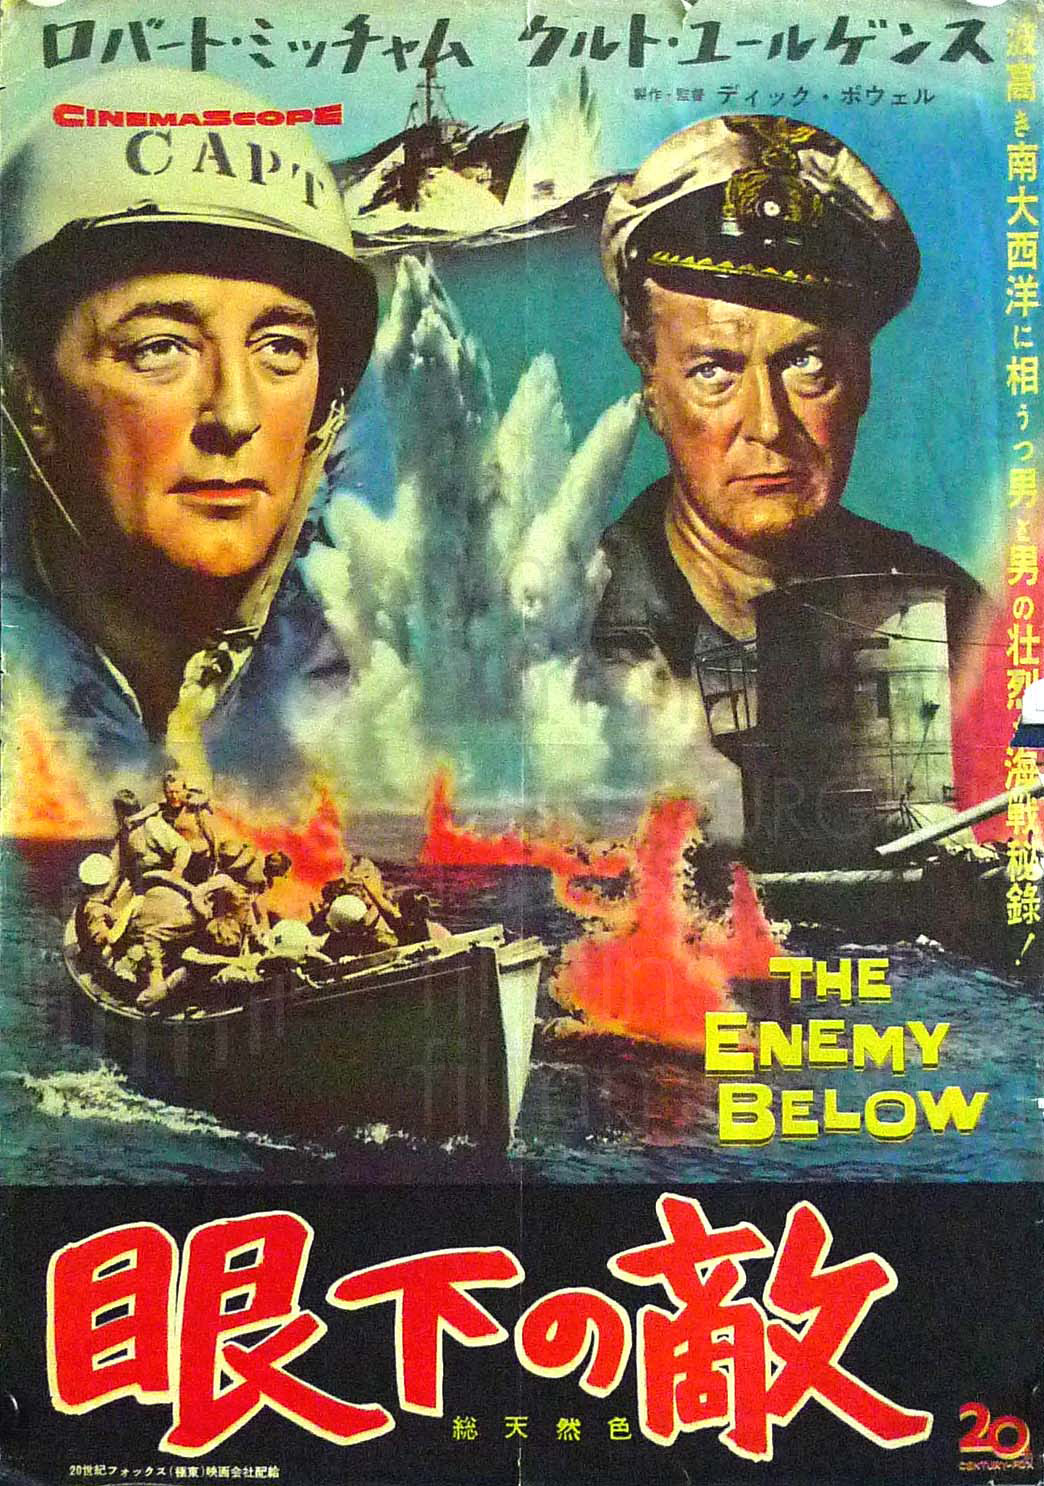 THE ENEMY BELOW (1957) jap. Plakat